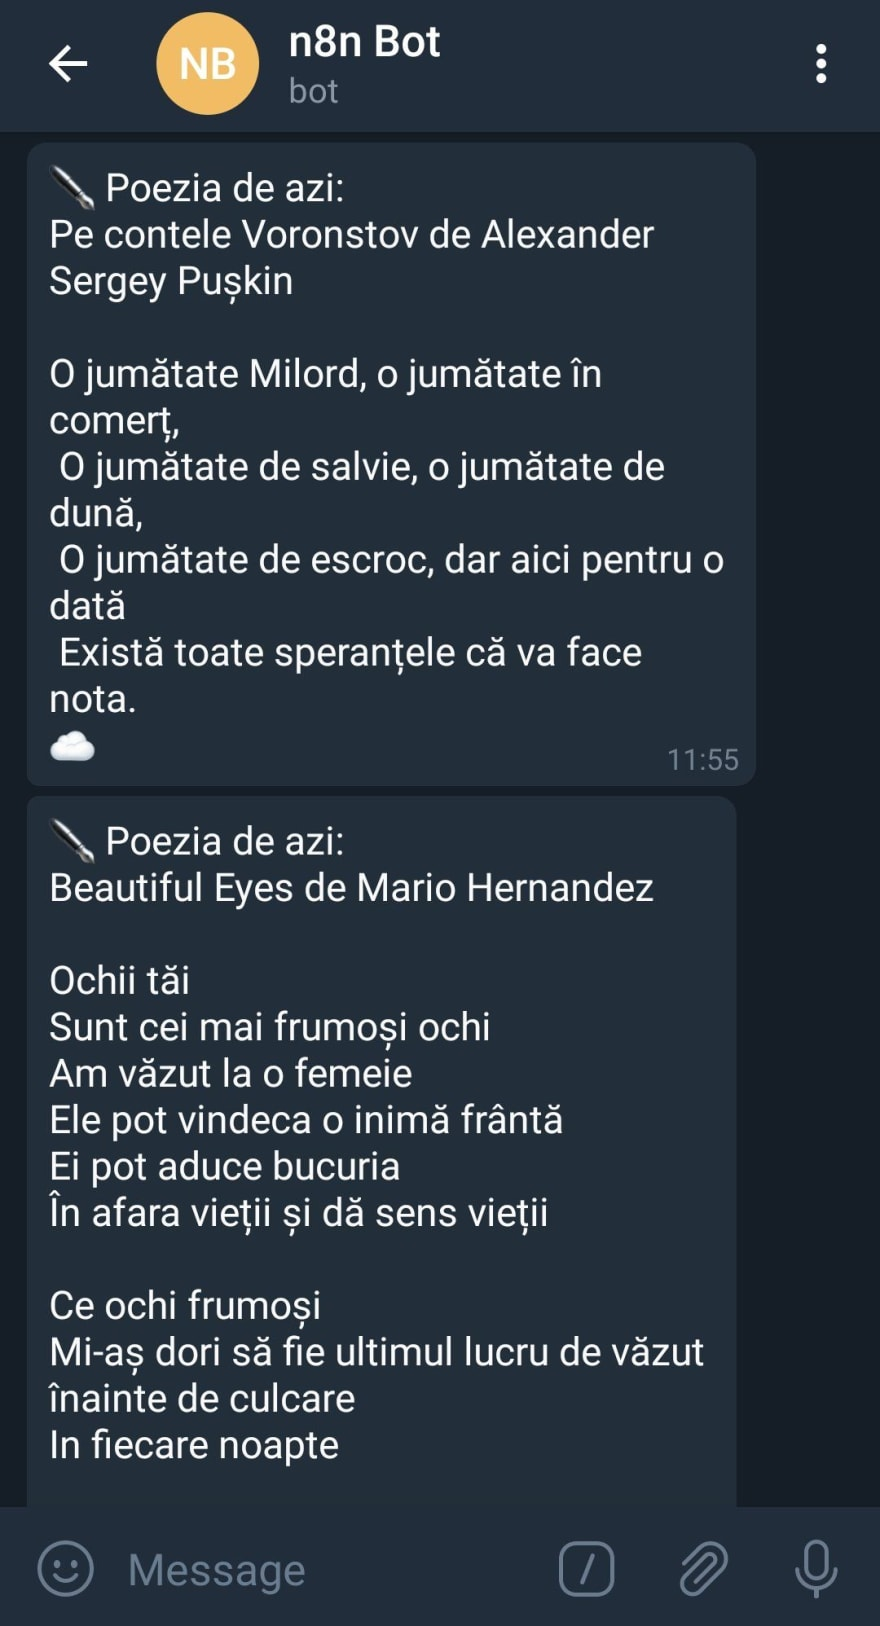 Message of a poem in a Telegram chat